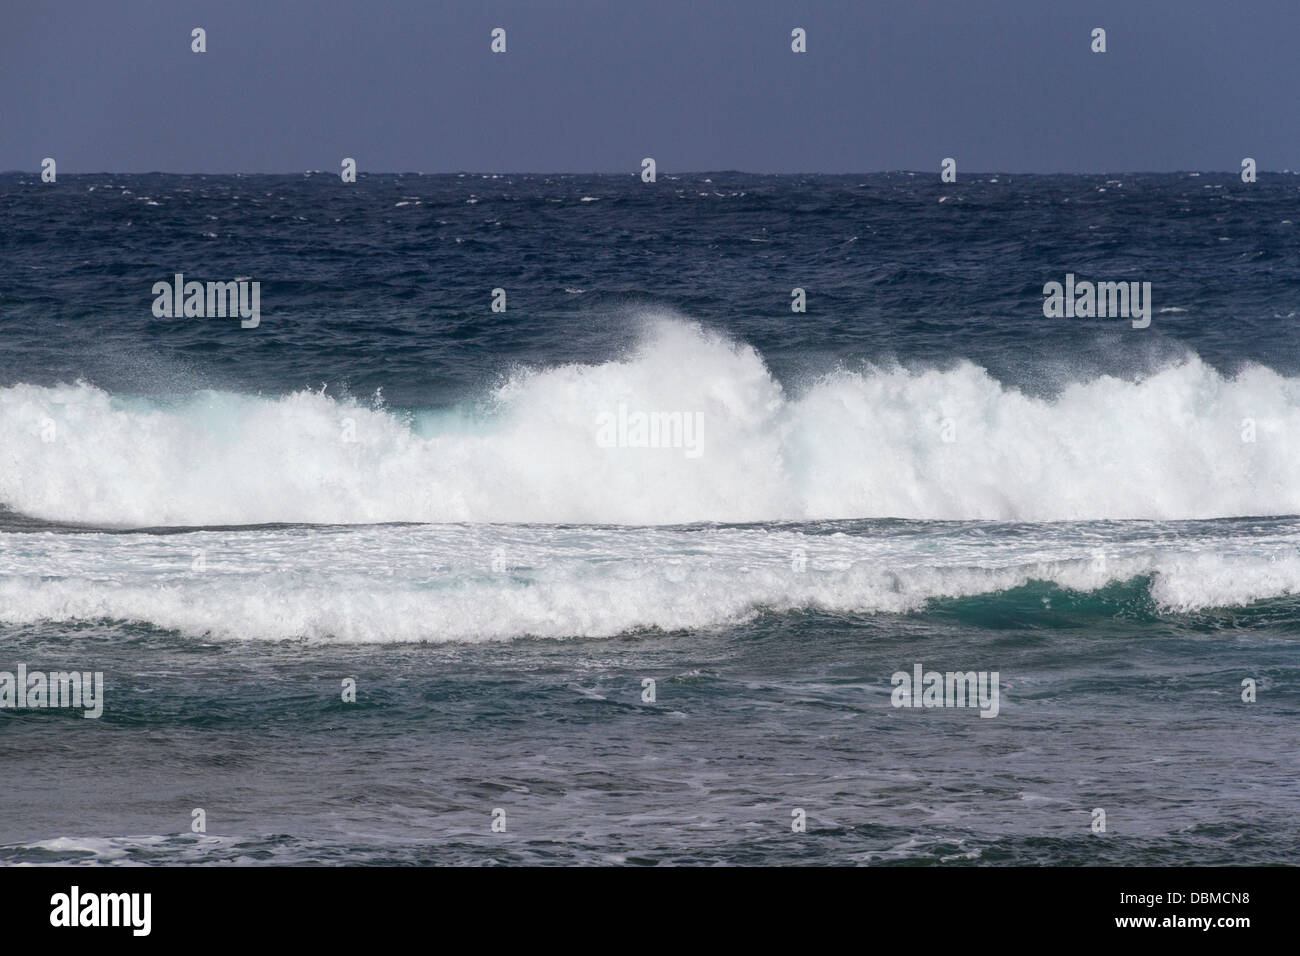 Wind and crashing waves on west coast of the island of Maui in Hawaii. - Stock Image